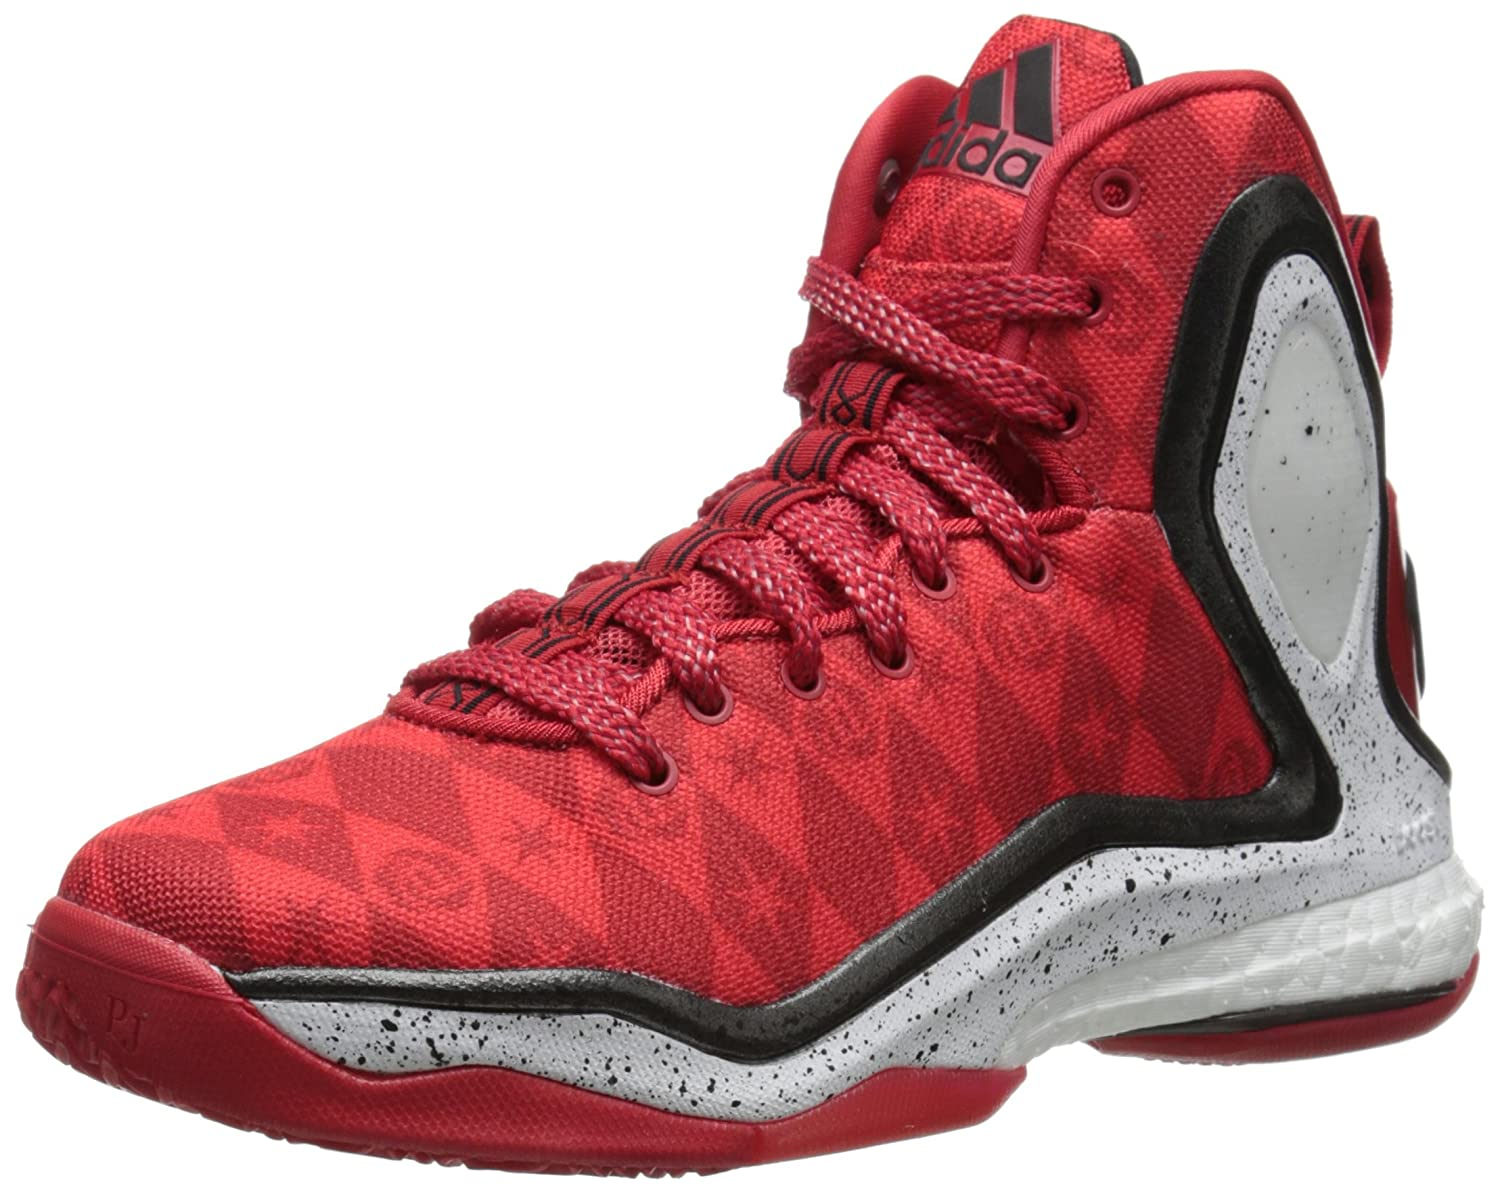 innovative design d5eaa 55a3c Amazon.com  adidas Performance D Rose 5 Boost J Kids Basketball Shoe (Big  Kid)  Basketball